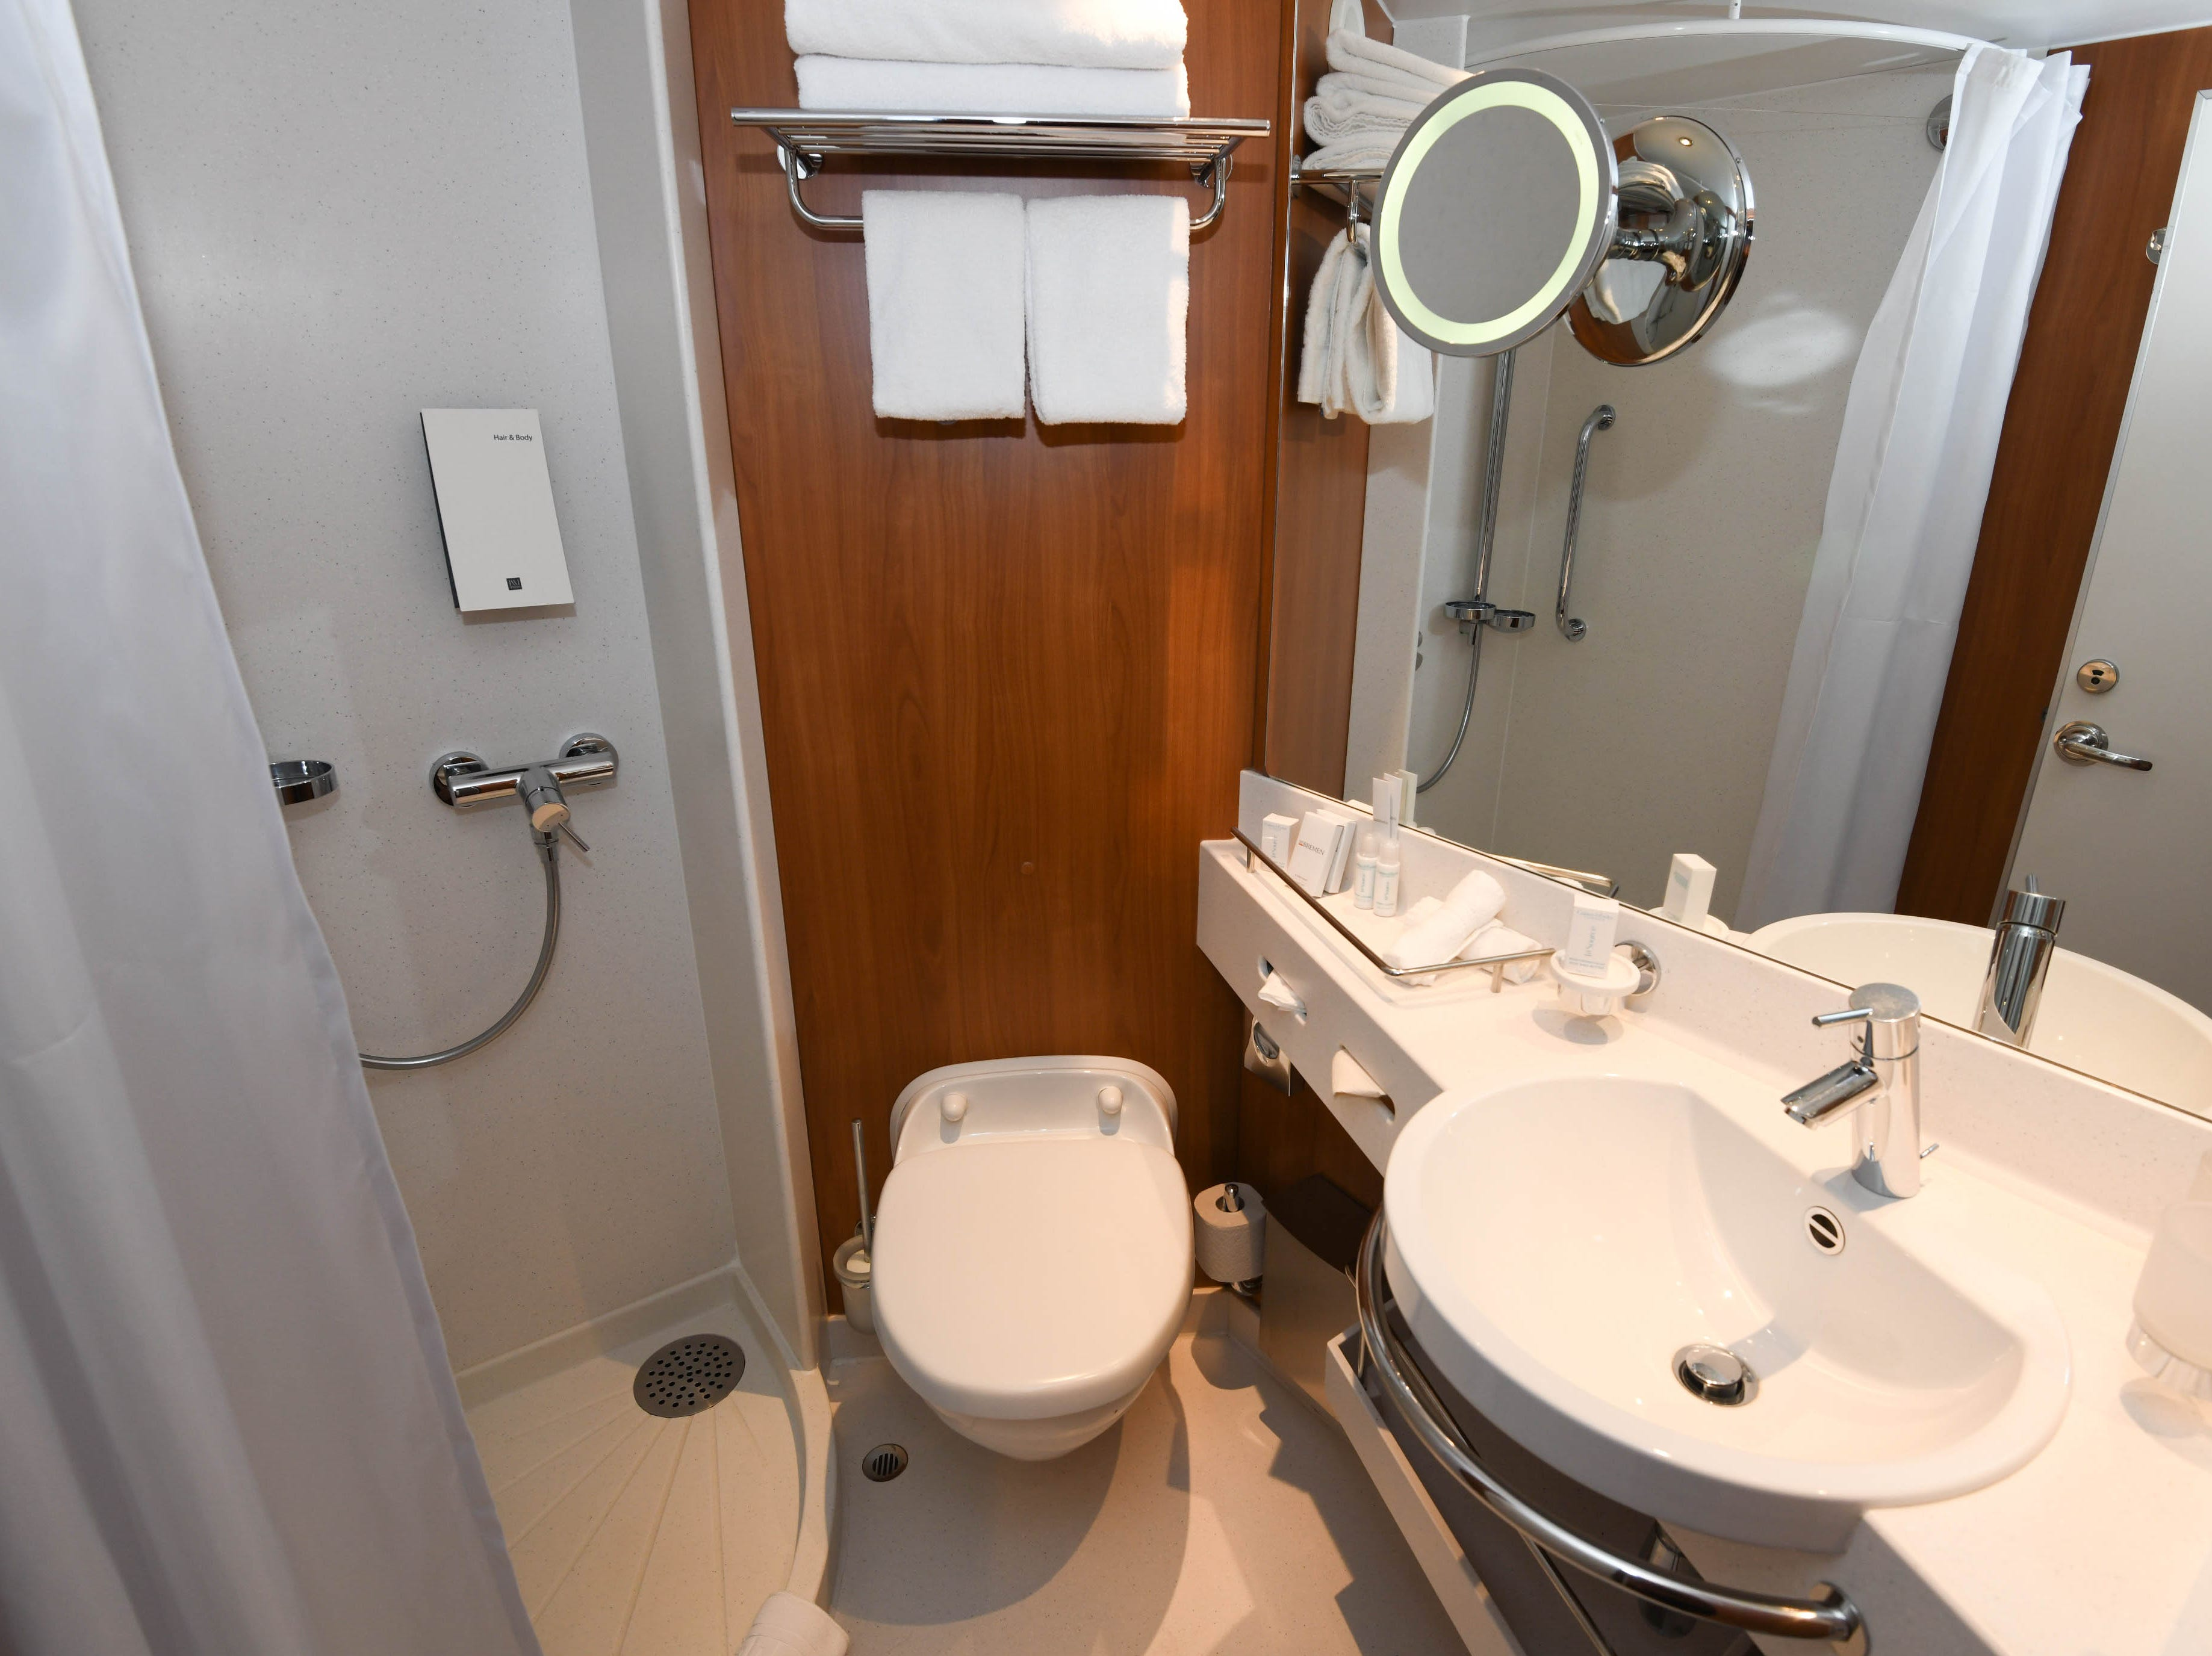 Cabins on Bremen have relatively small but well-designed bathrooms with a single sink, toilet and shower.